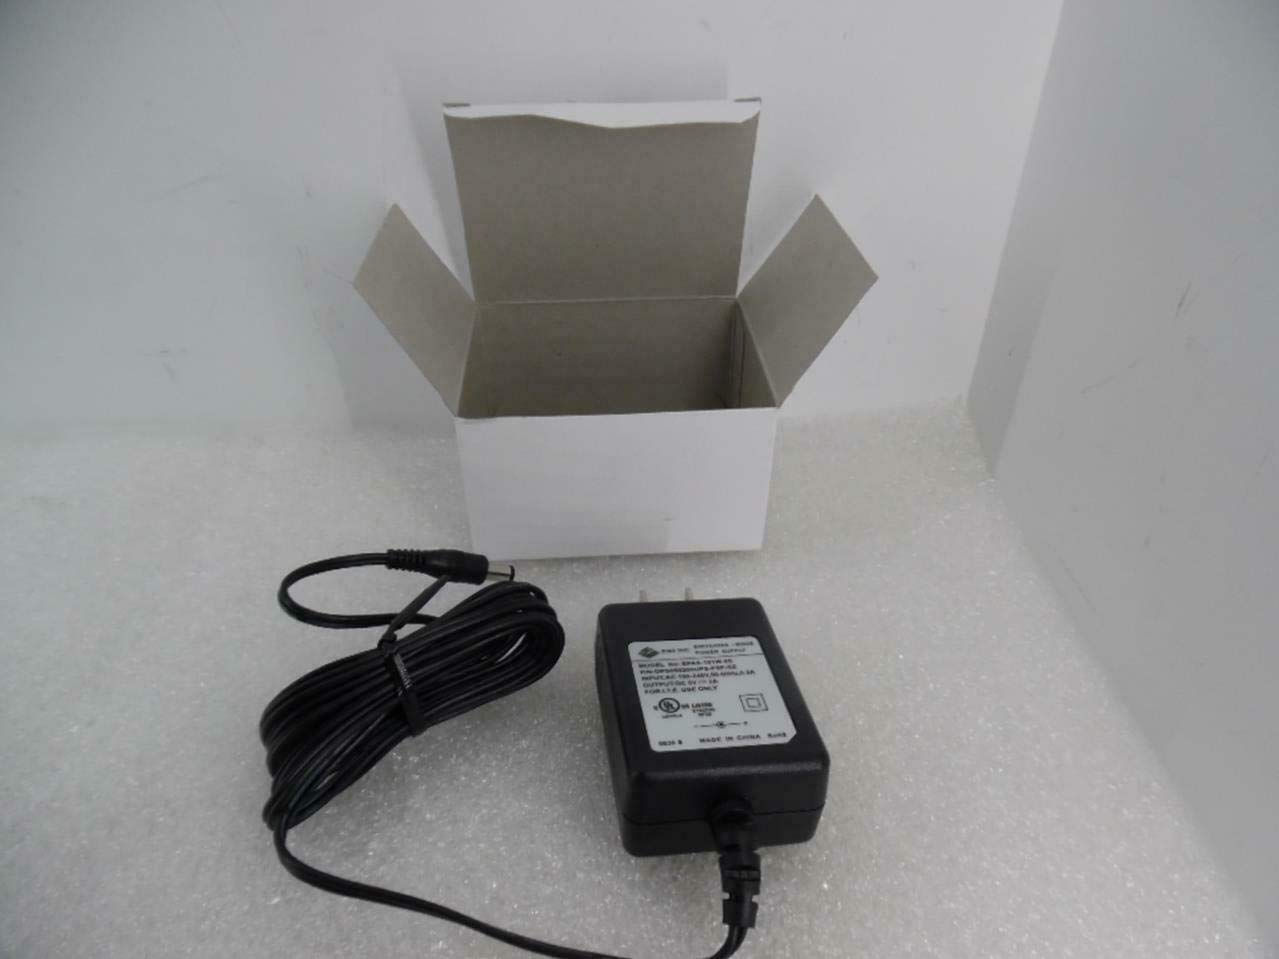 """CUI EPAS-101W-05 AC/DC Switching Wall Adapter, 5V, 2A, 10W, 2.4"""" H x 1.7"""" W x 1.0"""" D, Black"""